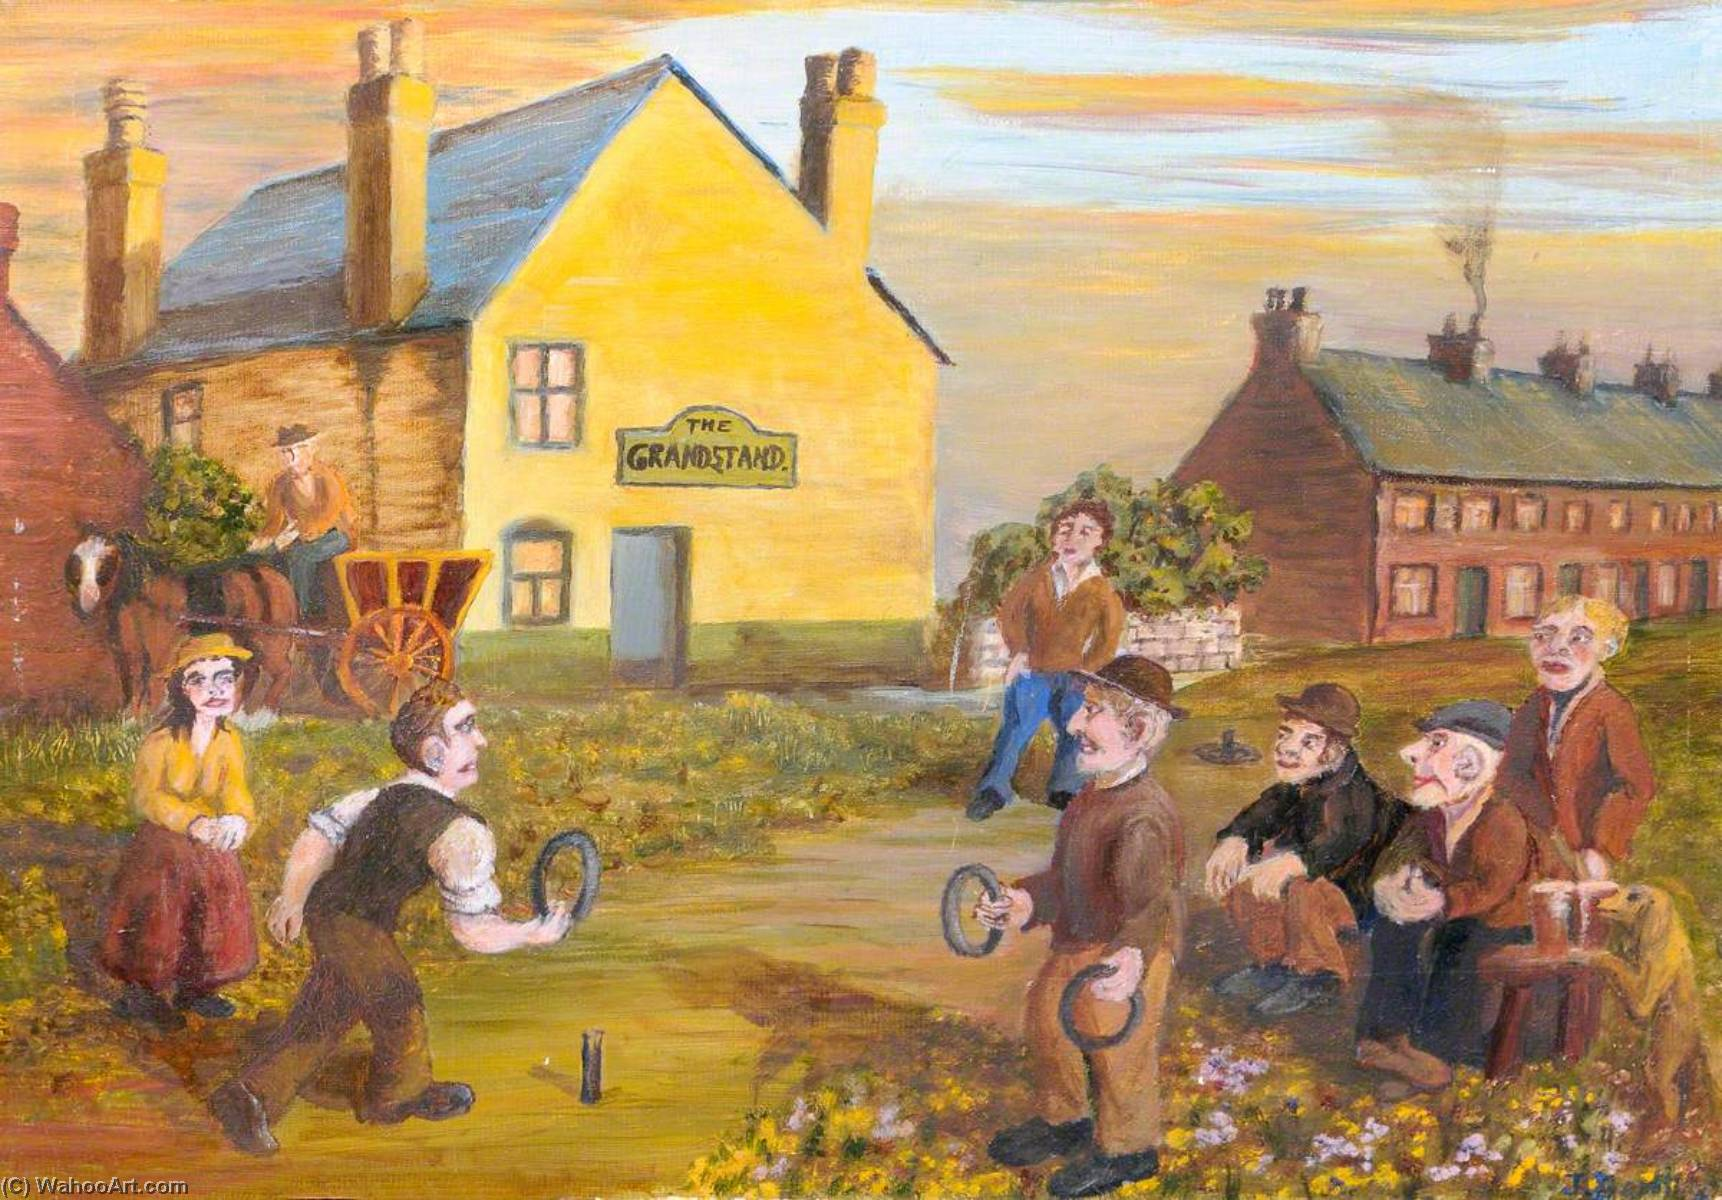 burntwood quoiters, óleo sobre lienzo de James Bentley